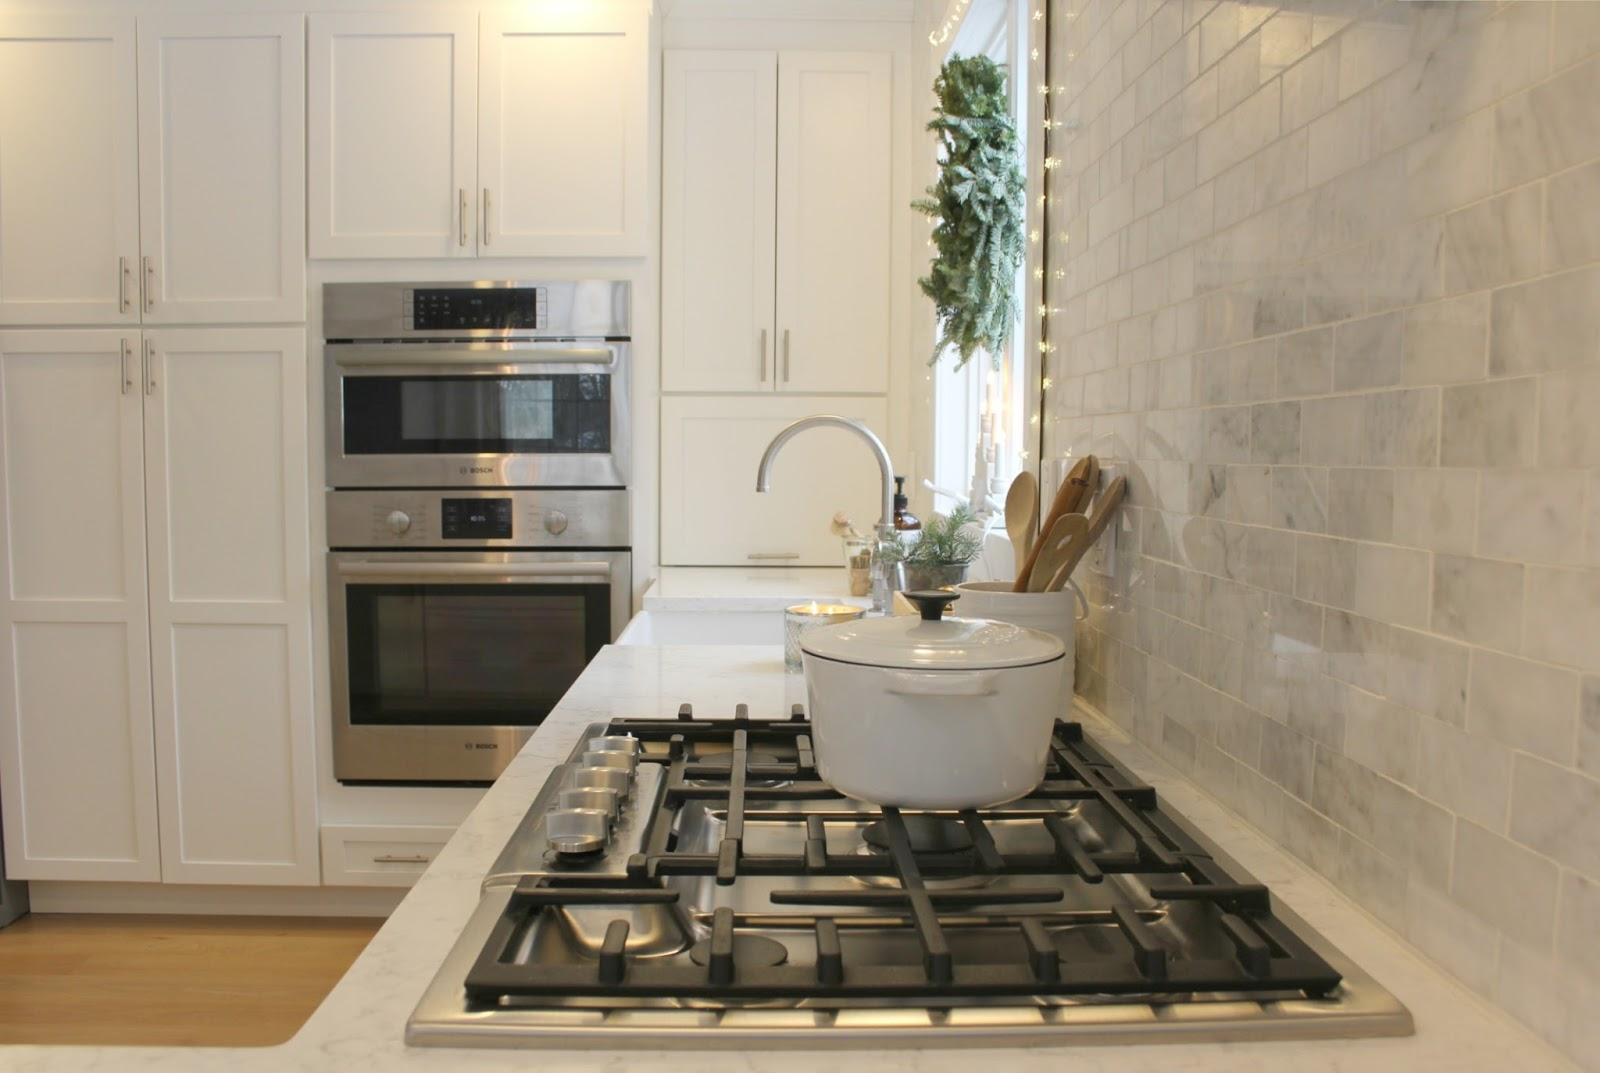 White European style kitchen with carrara marble statement wall and cooktop - Hello Lovely Studio